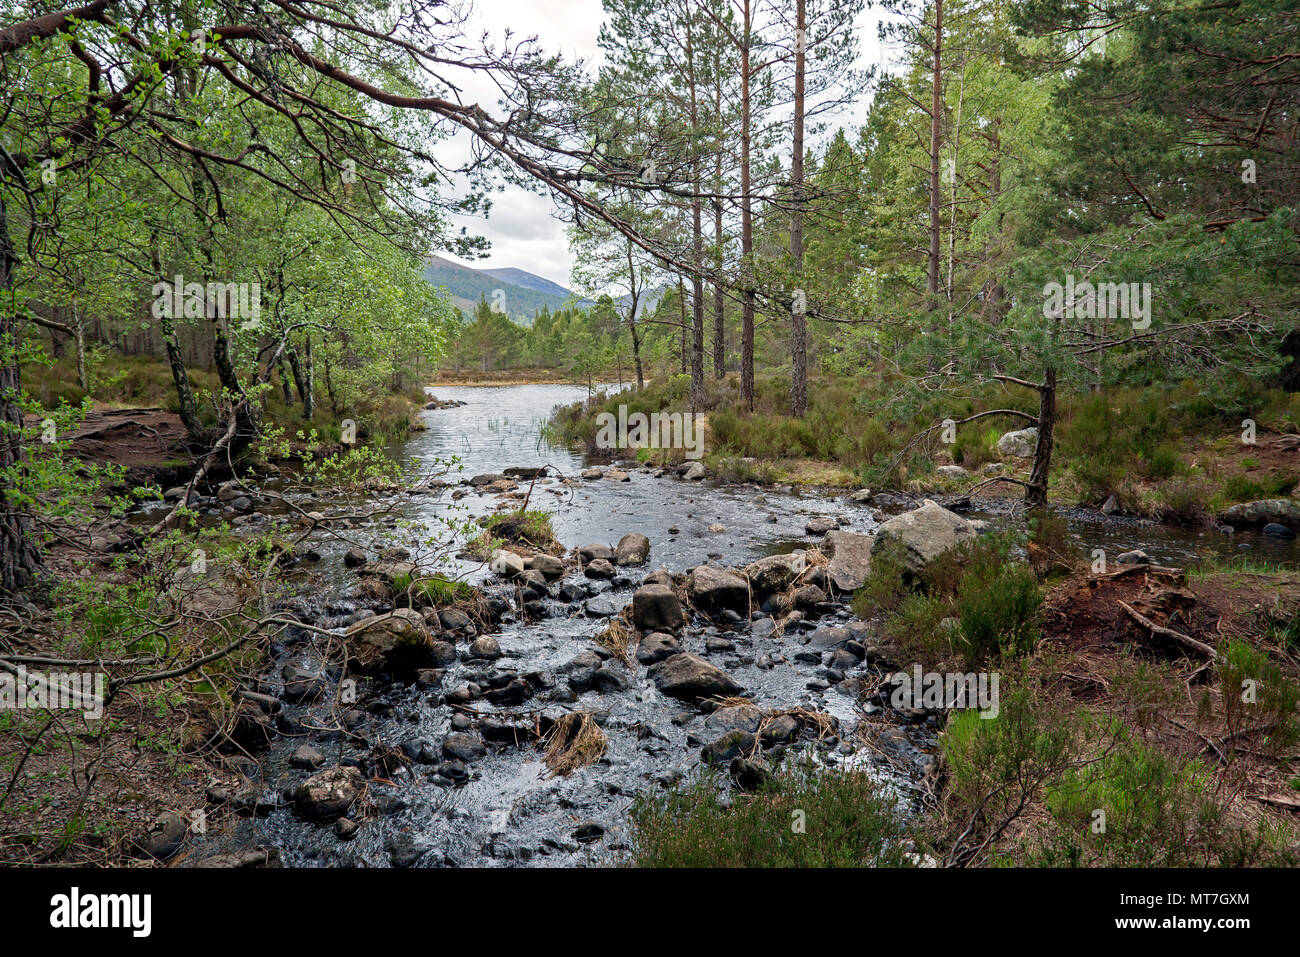 Looking towards Loch Gamhna next to Loch an Eilein near Aviemore in the Cairngorms National Park, Scotland, UK. - Stock Image